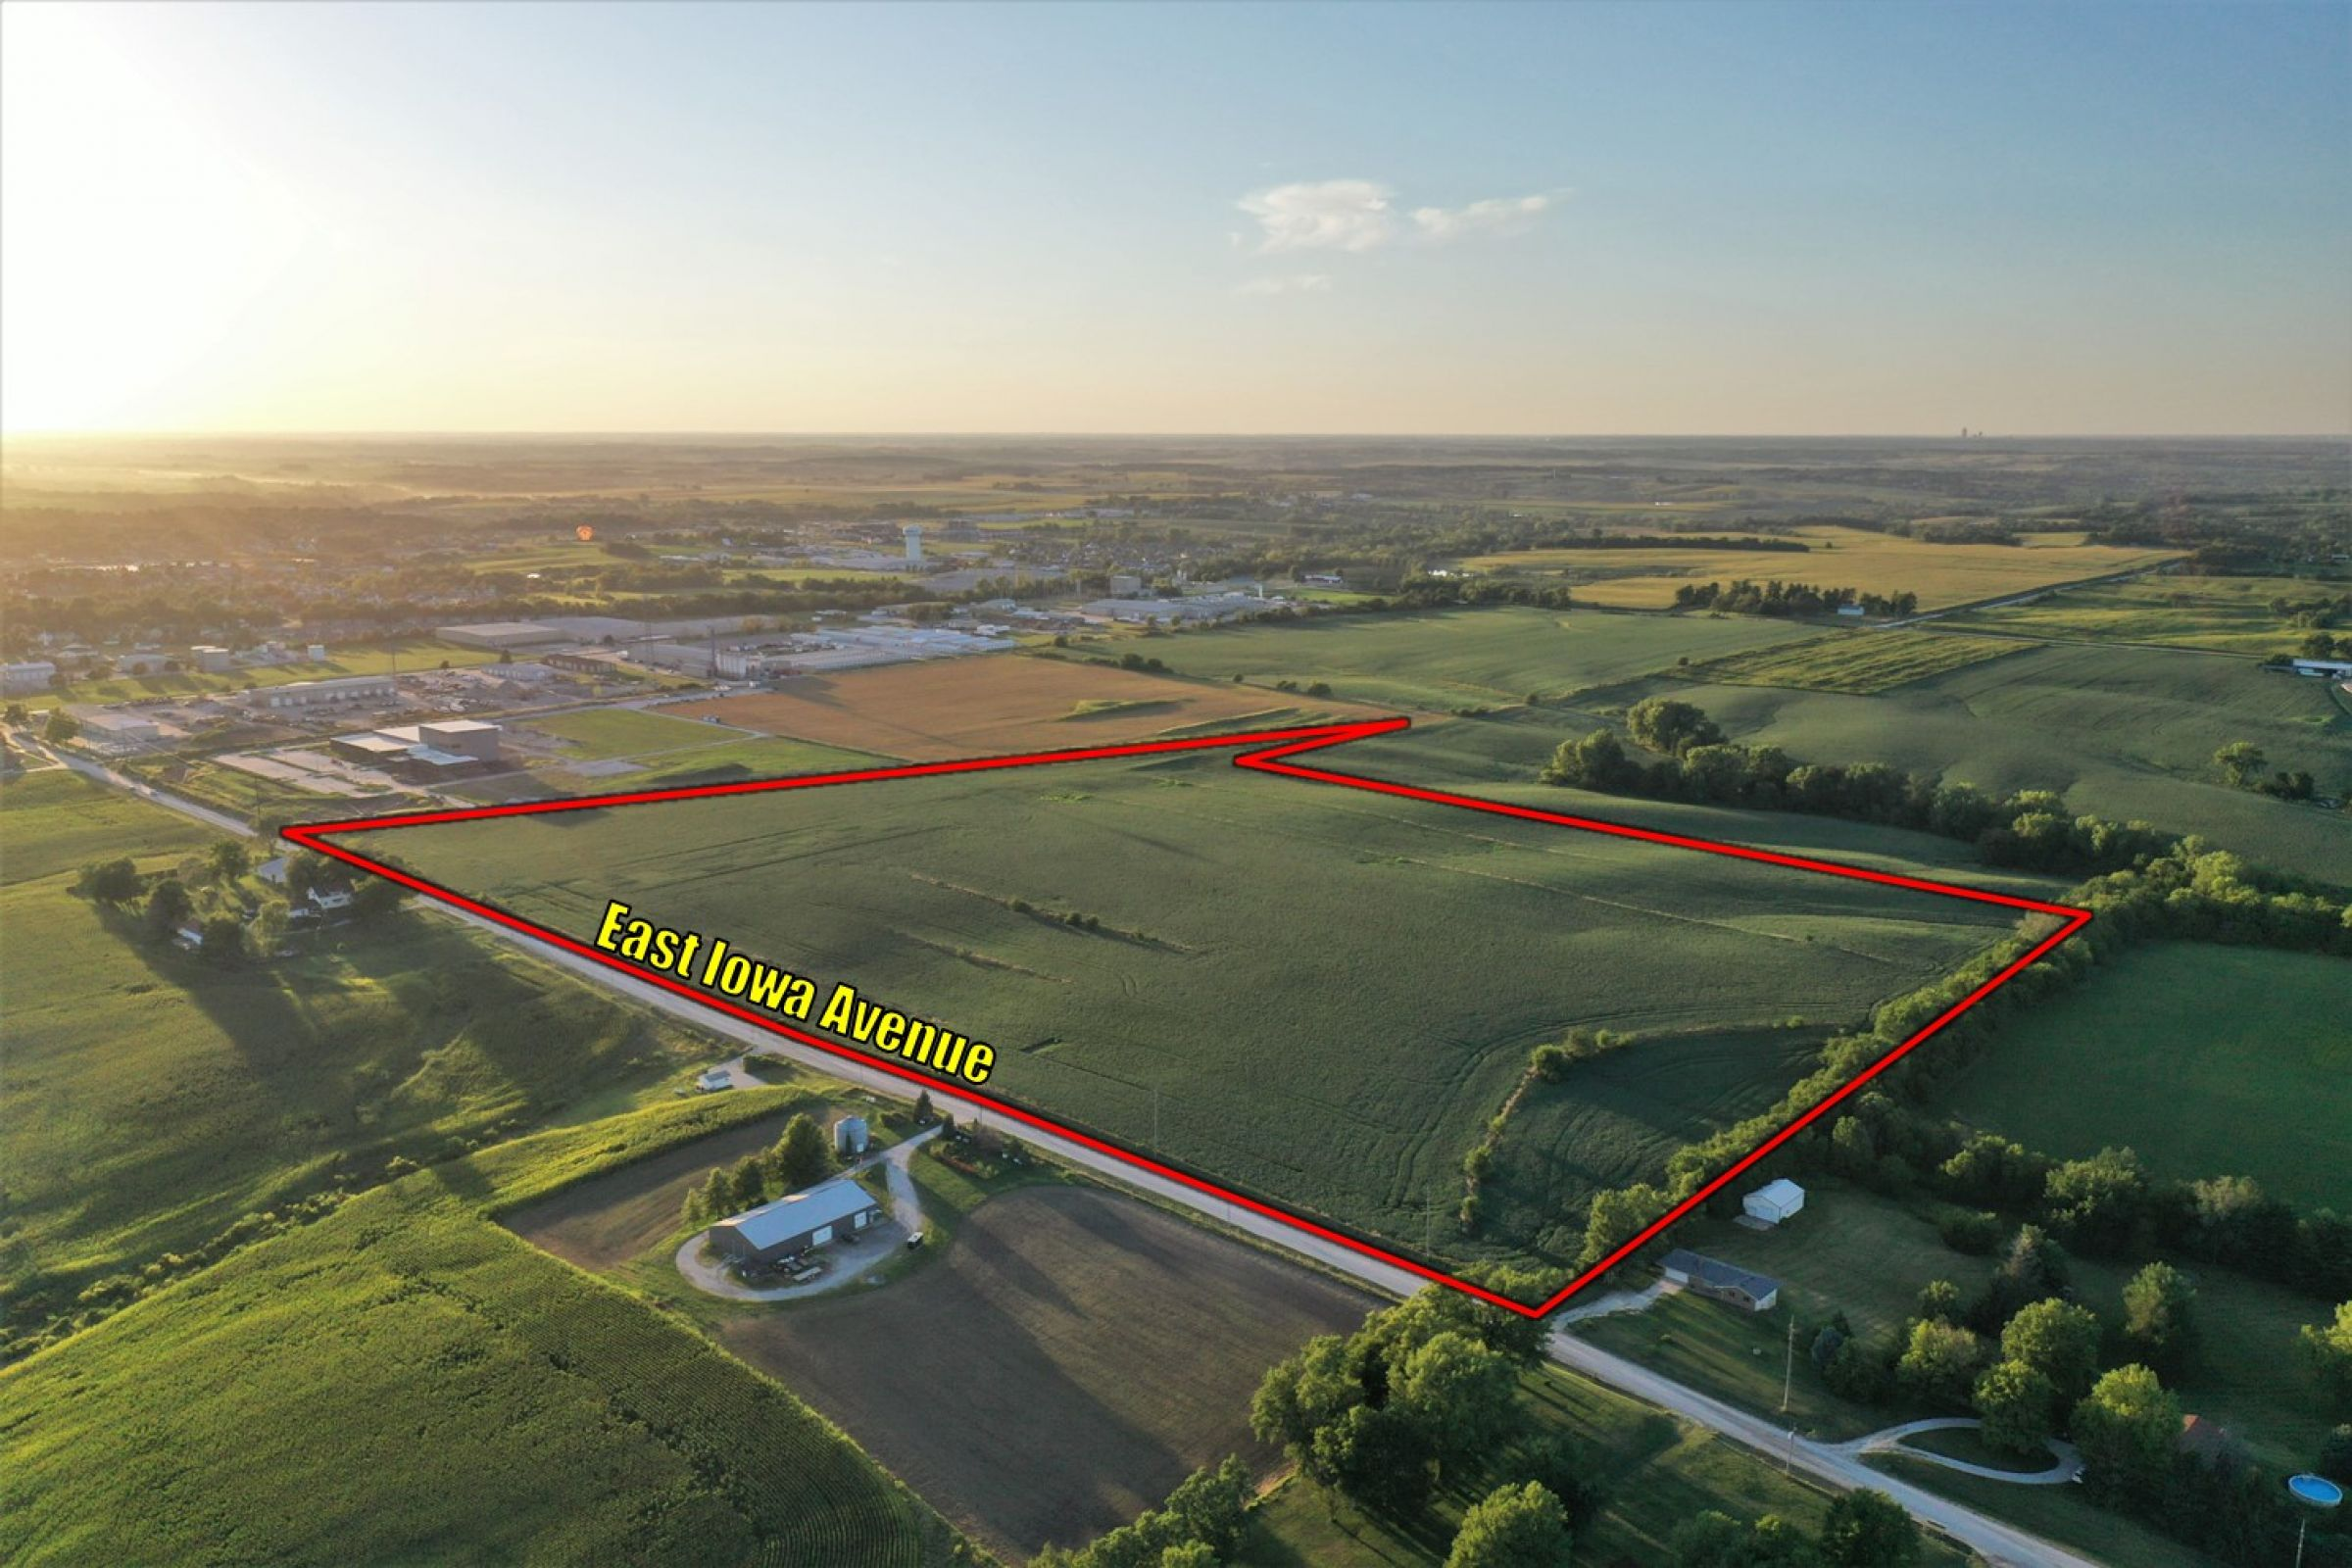 development-land-commercial-warren-county-iowa-50-acres-listing-number-15150-2-2020-08-31-121602.jpg